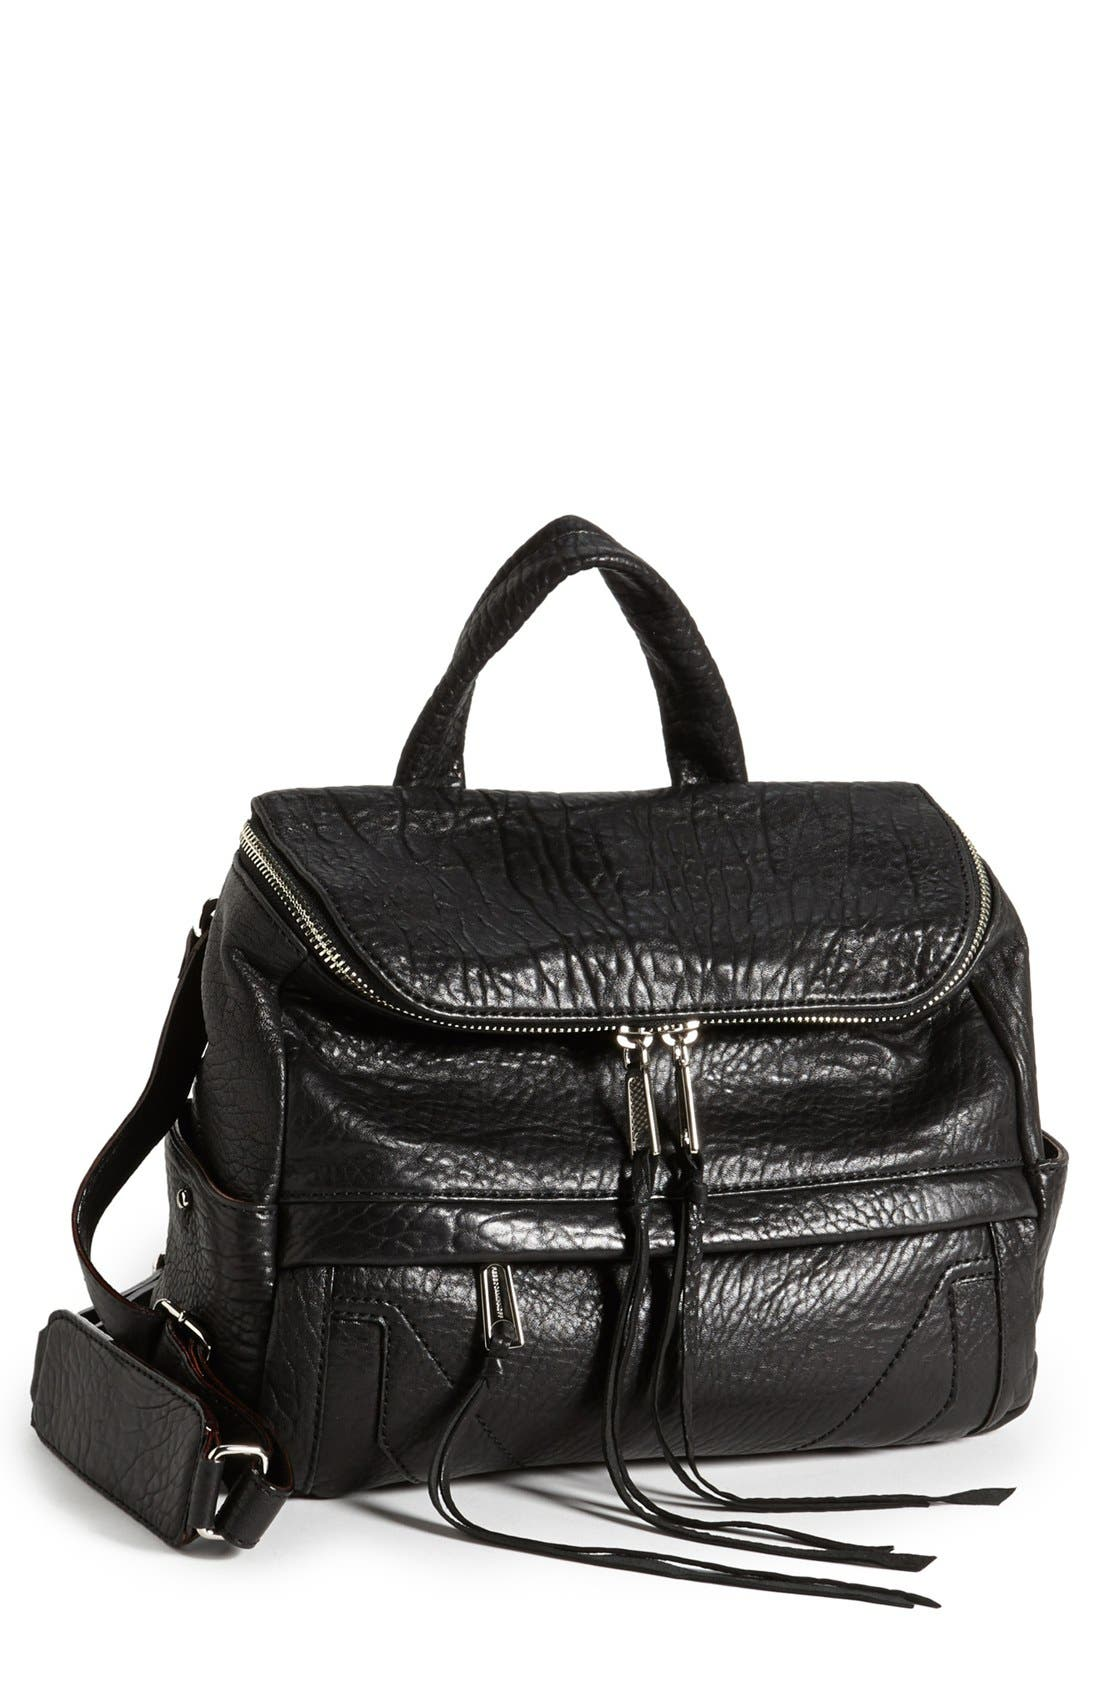 Alternate Image 1 Selected - Rebecca Minkoff 'Zach' Convertible Leather Backpack